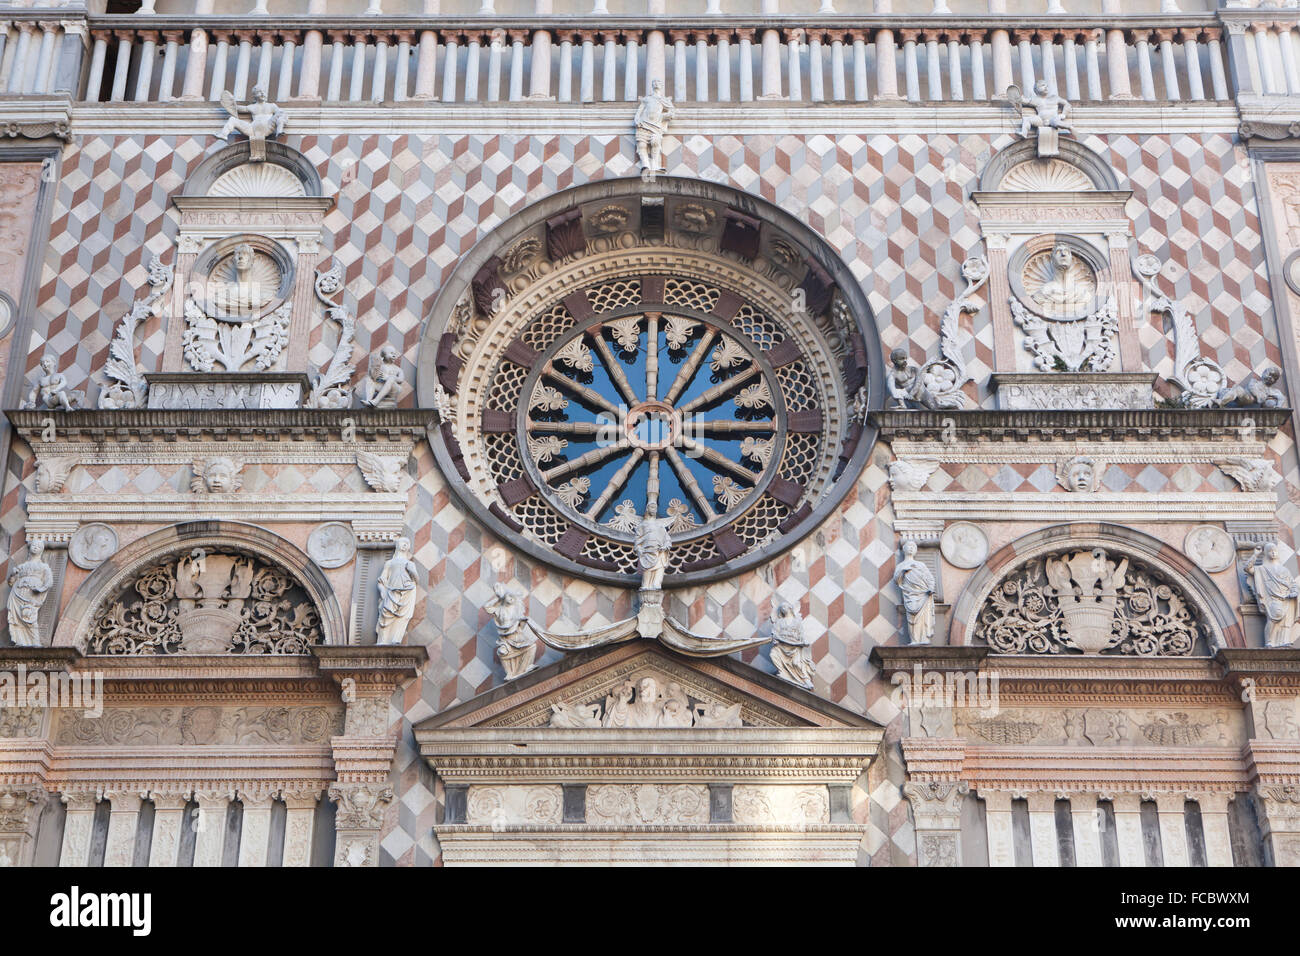 Cappella Colleoni designed by Italian Renaissance architect Giovanni Antonio Amadeo in Bergamo, Lombardy, Italy. - Stock Image